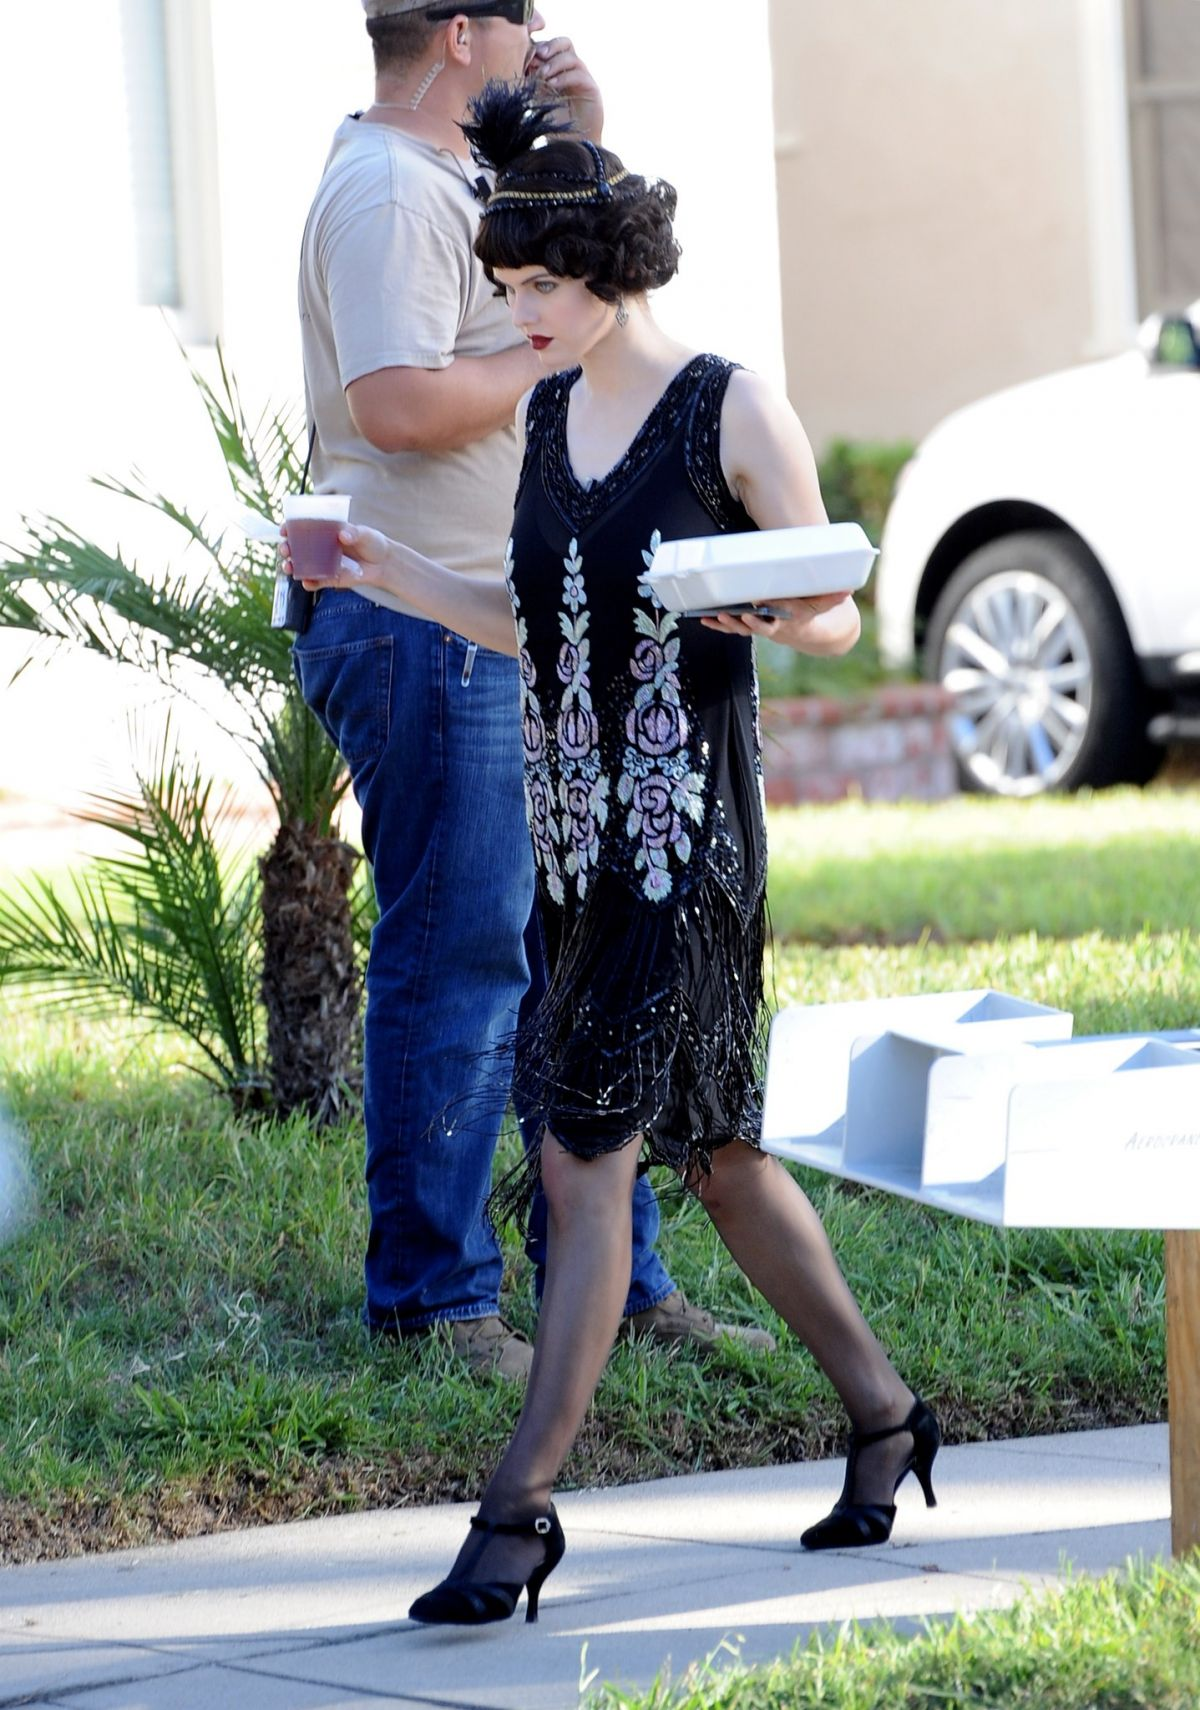 alexandra-daddario-on-the-set-of-american-horror-story-in-los-angeles-10-23-2015_7